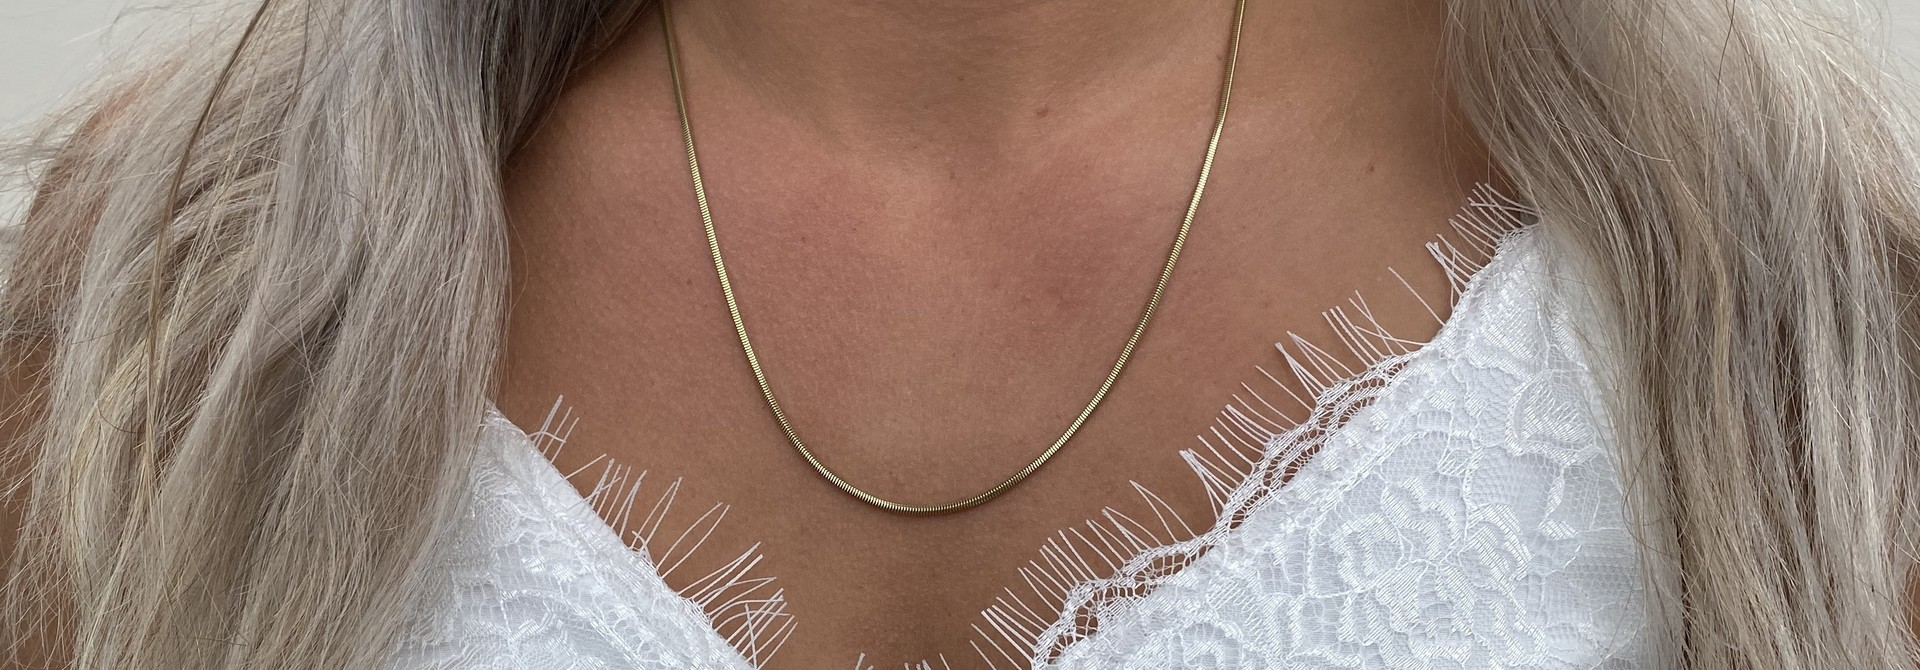 Ketting collier